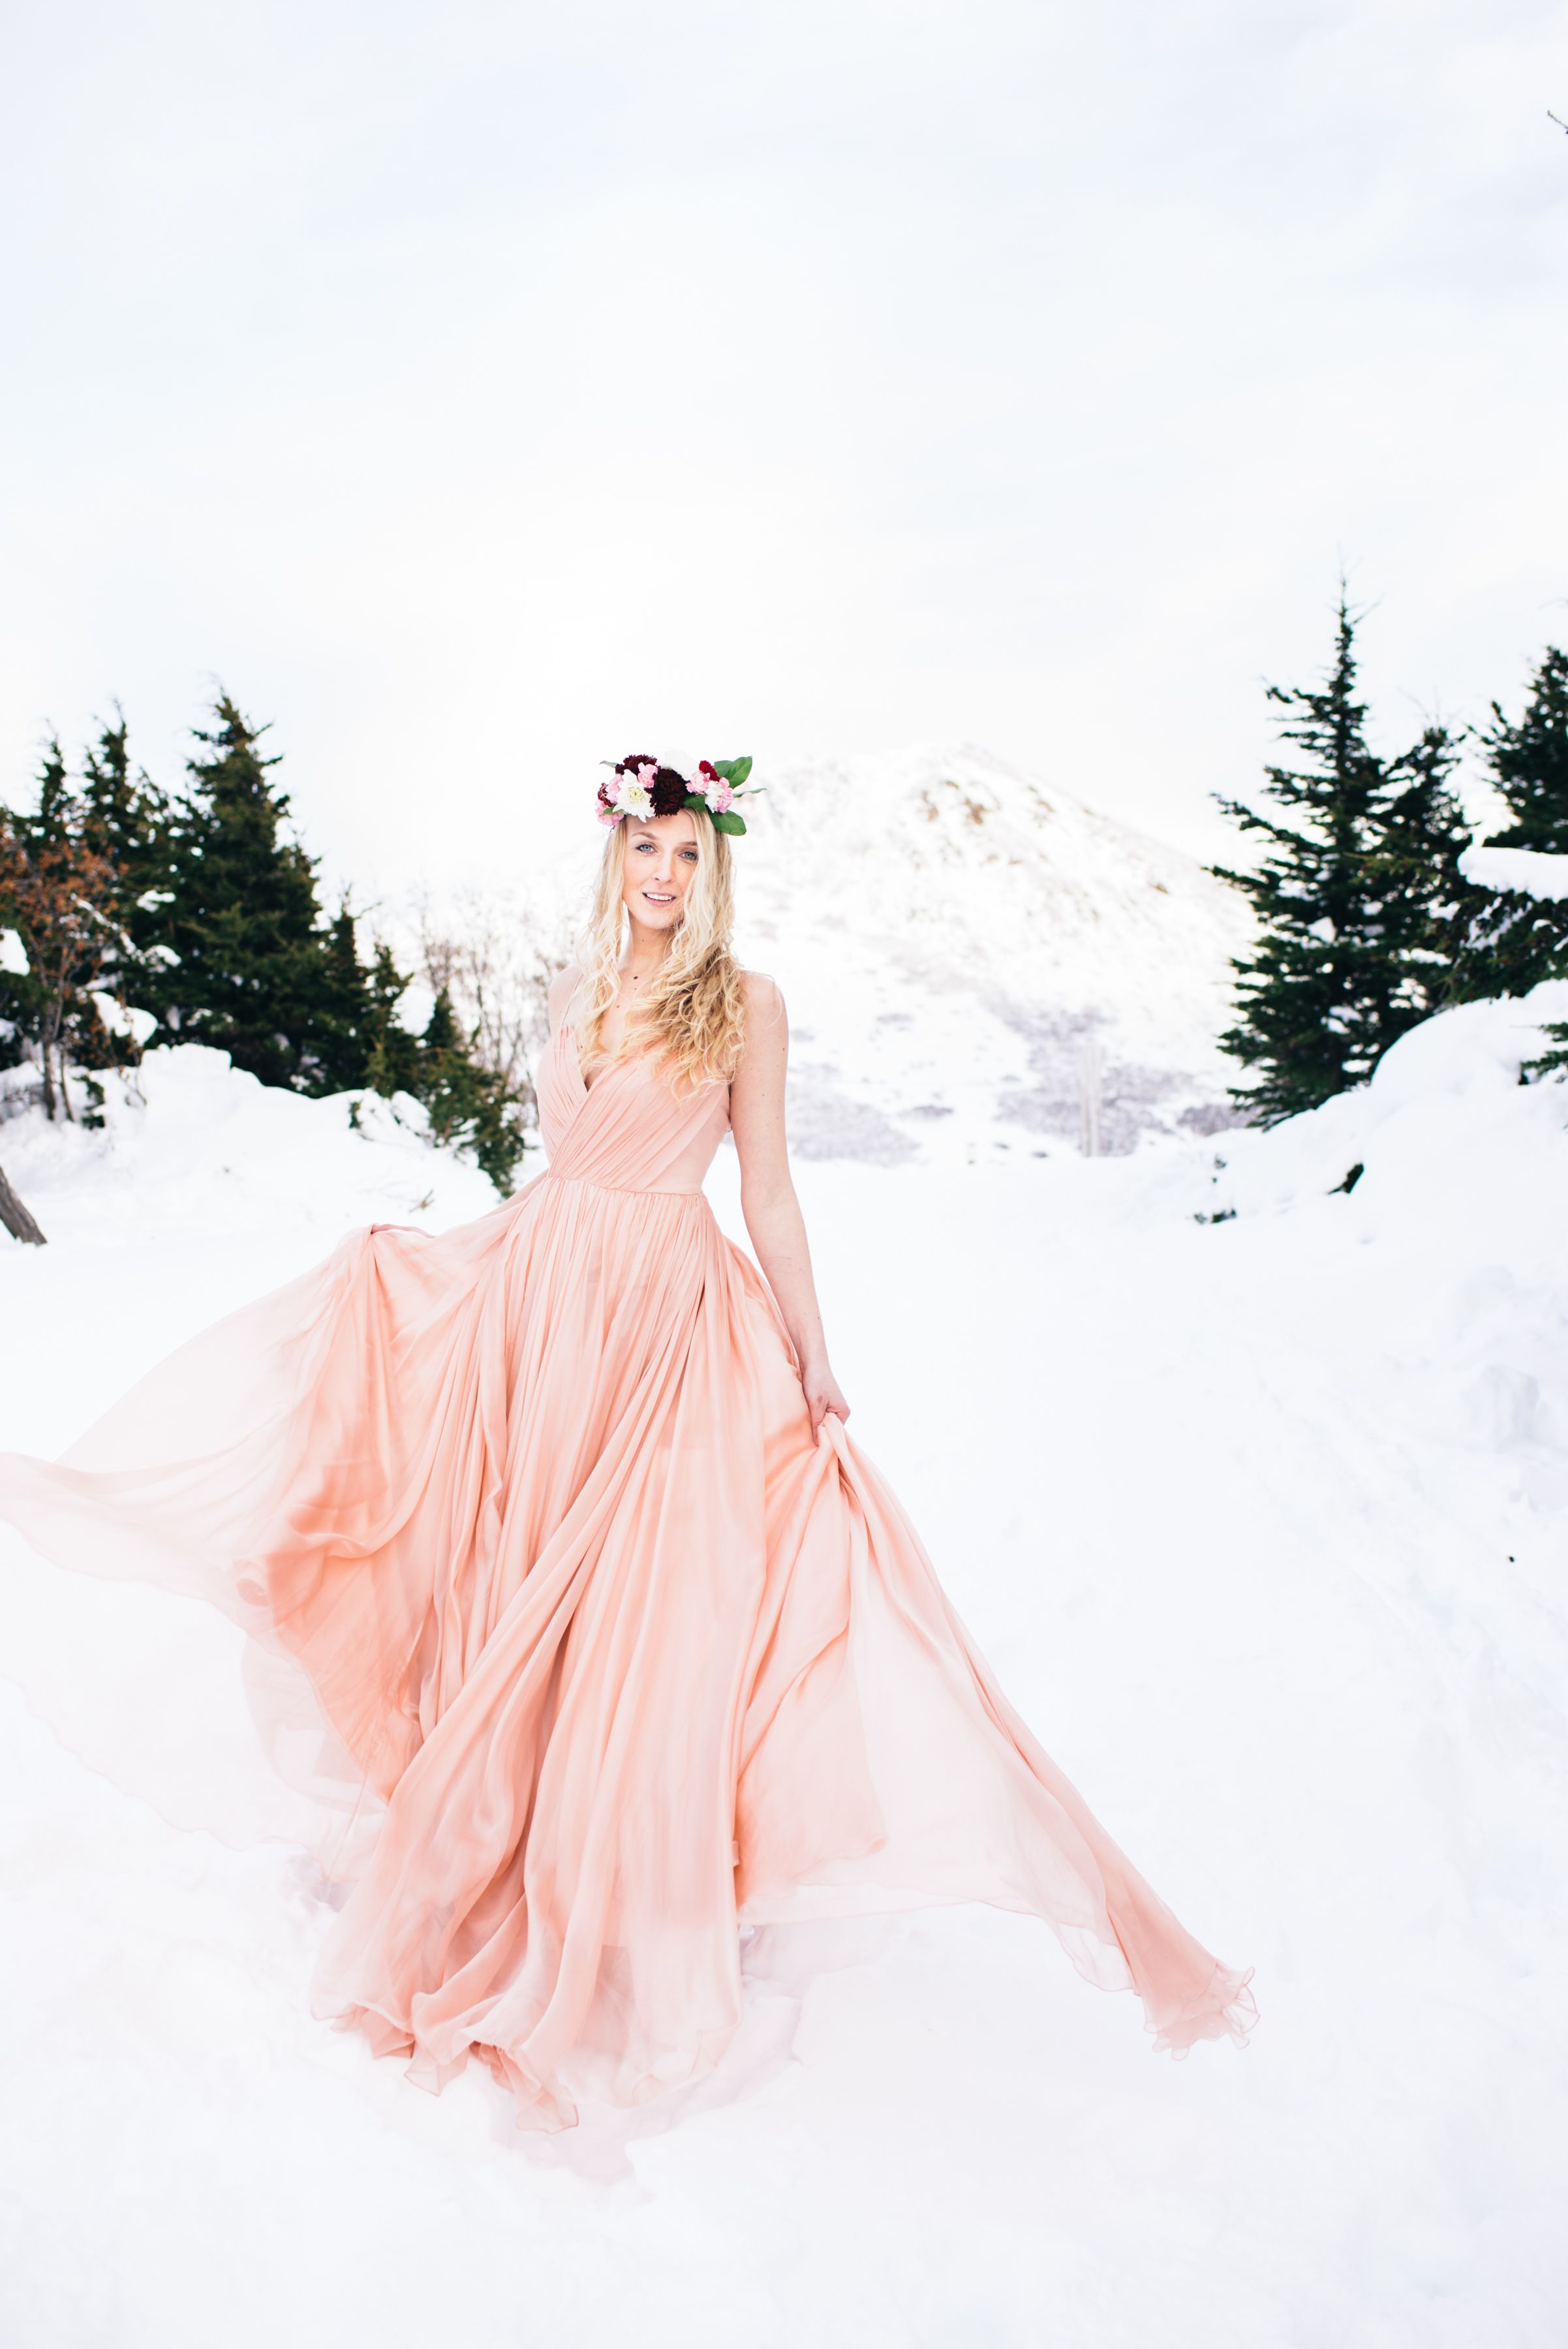 32 dreamy winter wedding photos ideas for winter weddings